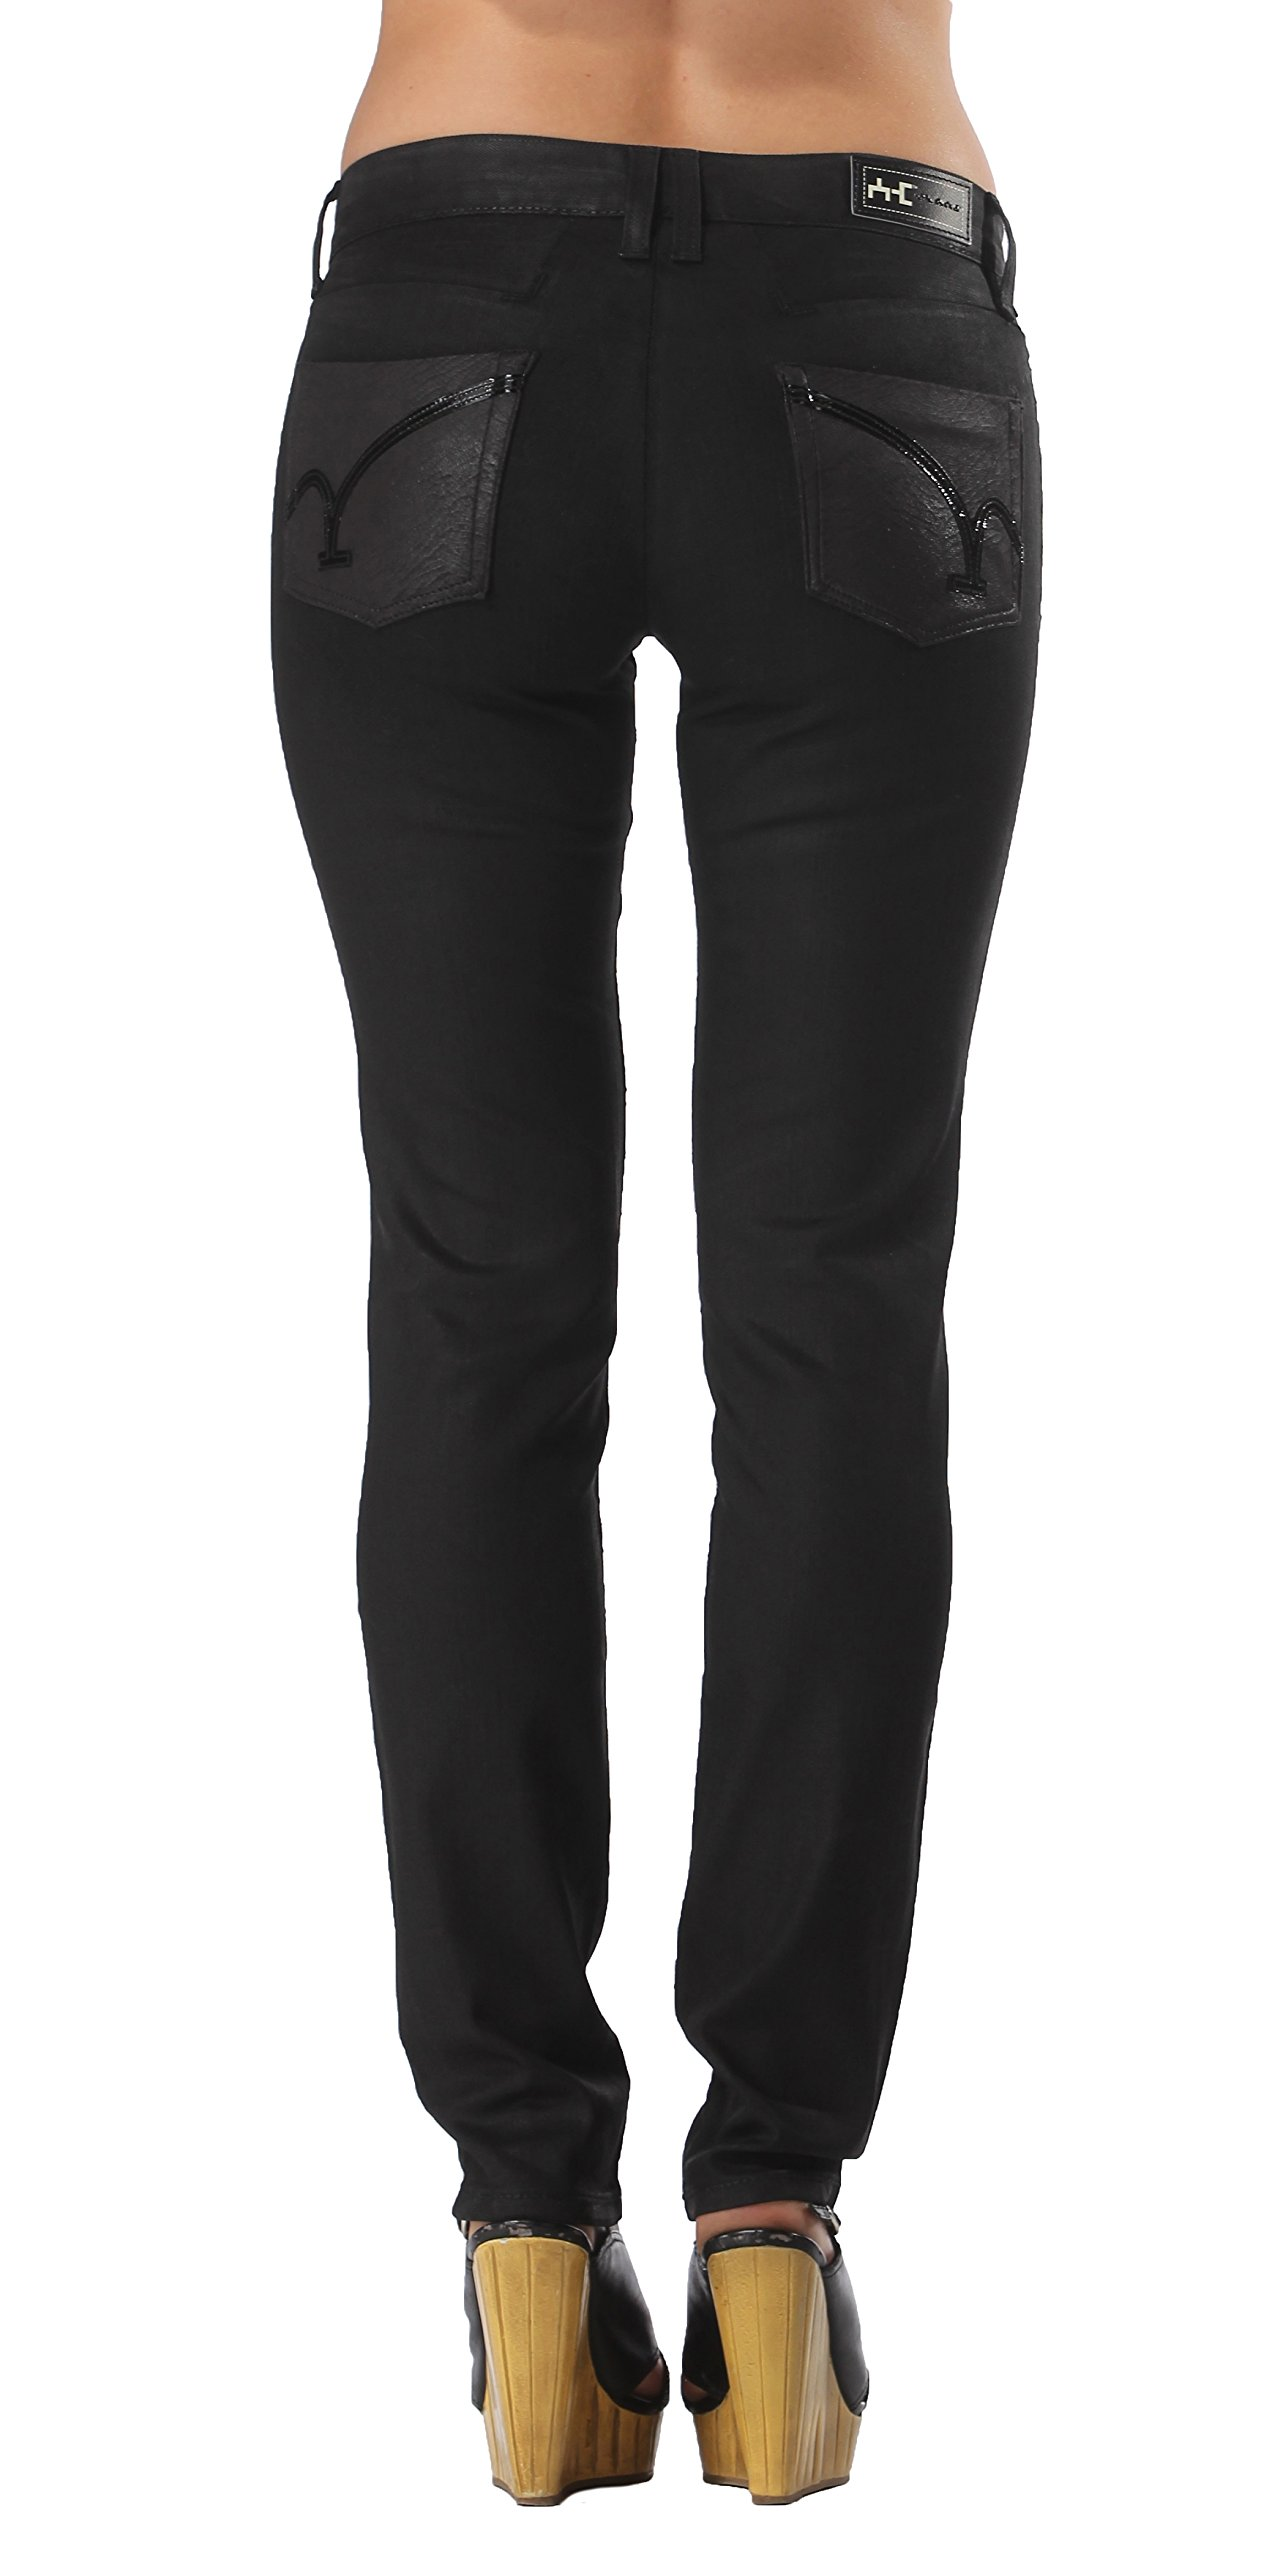 Coated Stretch Black Skinny Jeans | Low Rise Fitted Skinny Jeans for Women Juniors (25)